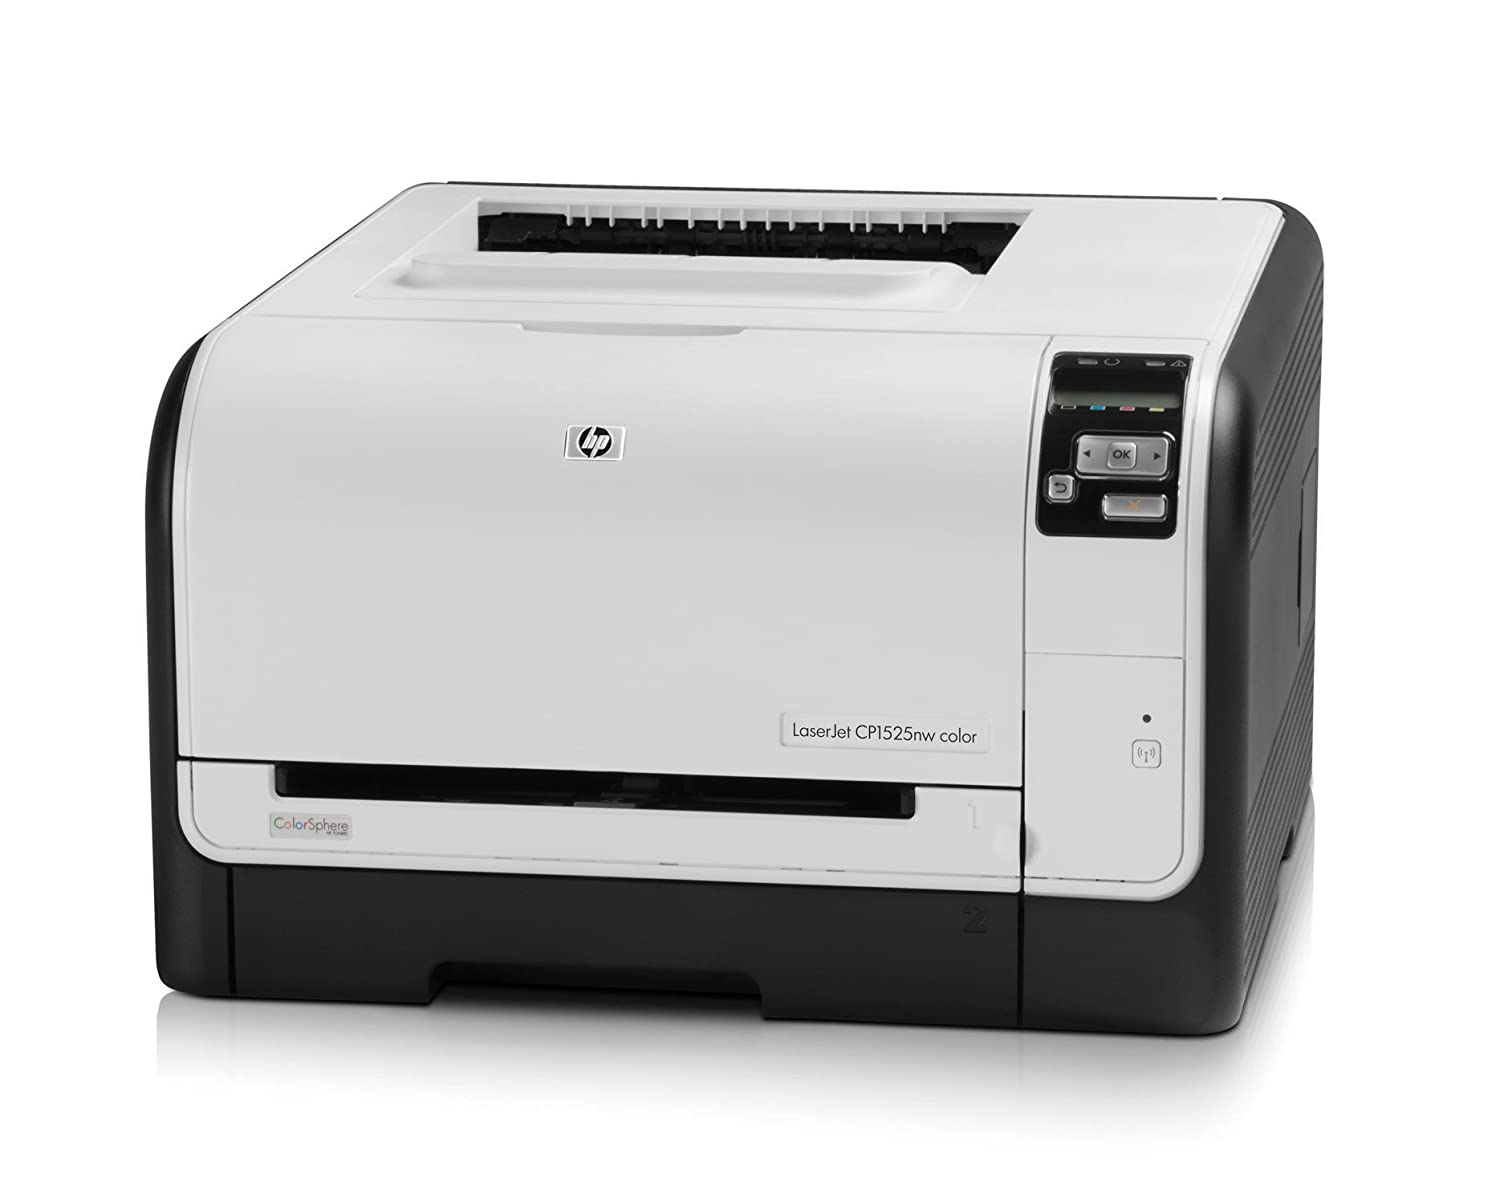 HP LaserJet Pro Color CP1525nw - Impresora láser color (12 ppm, A4)